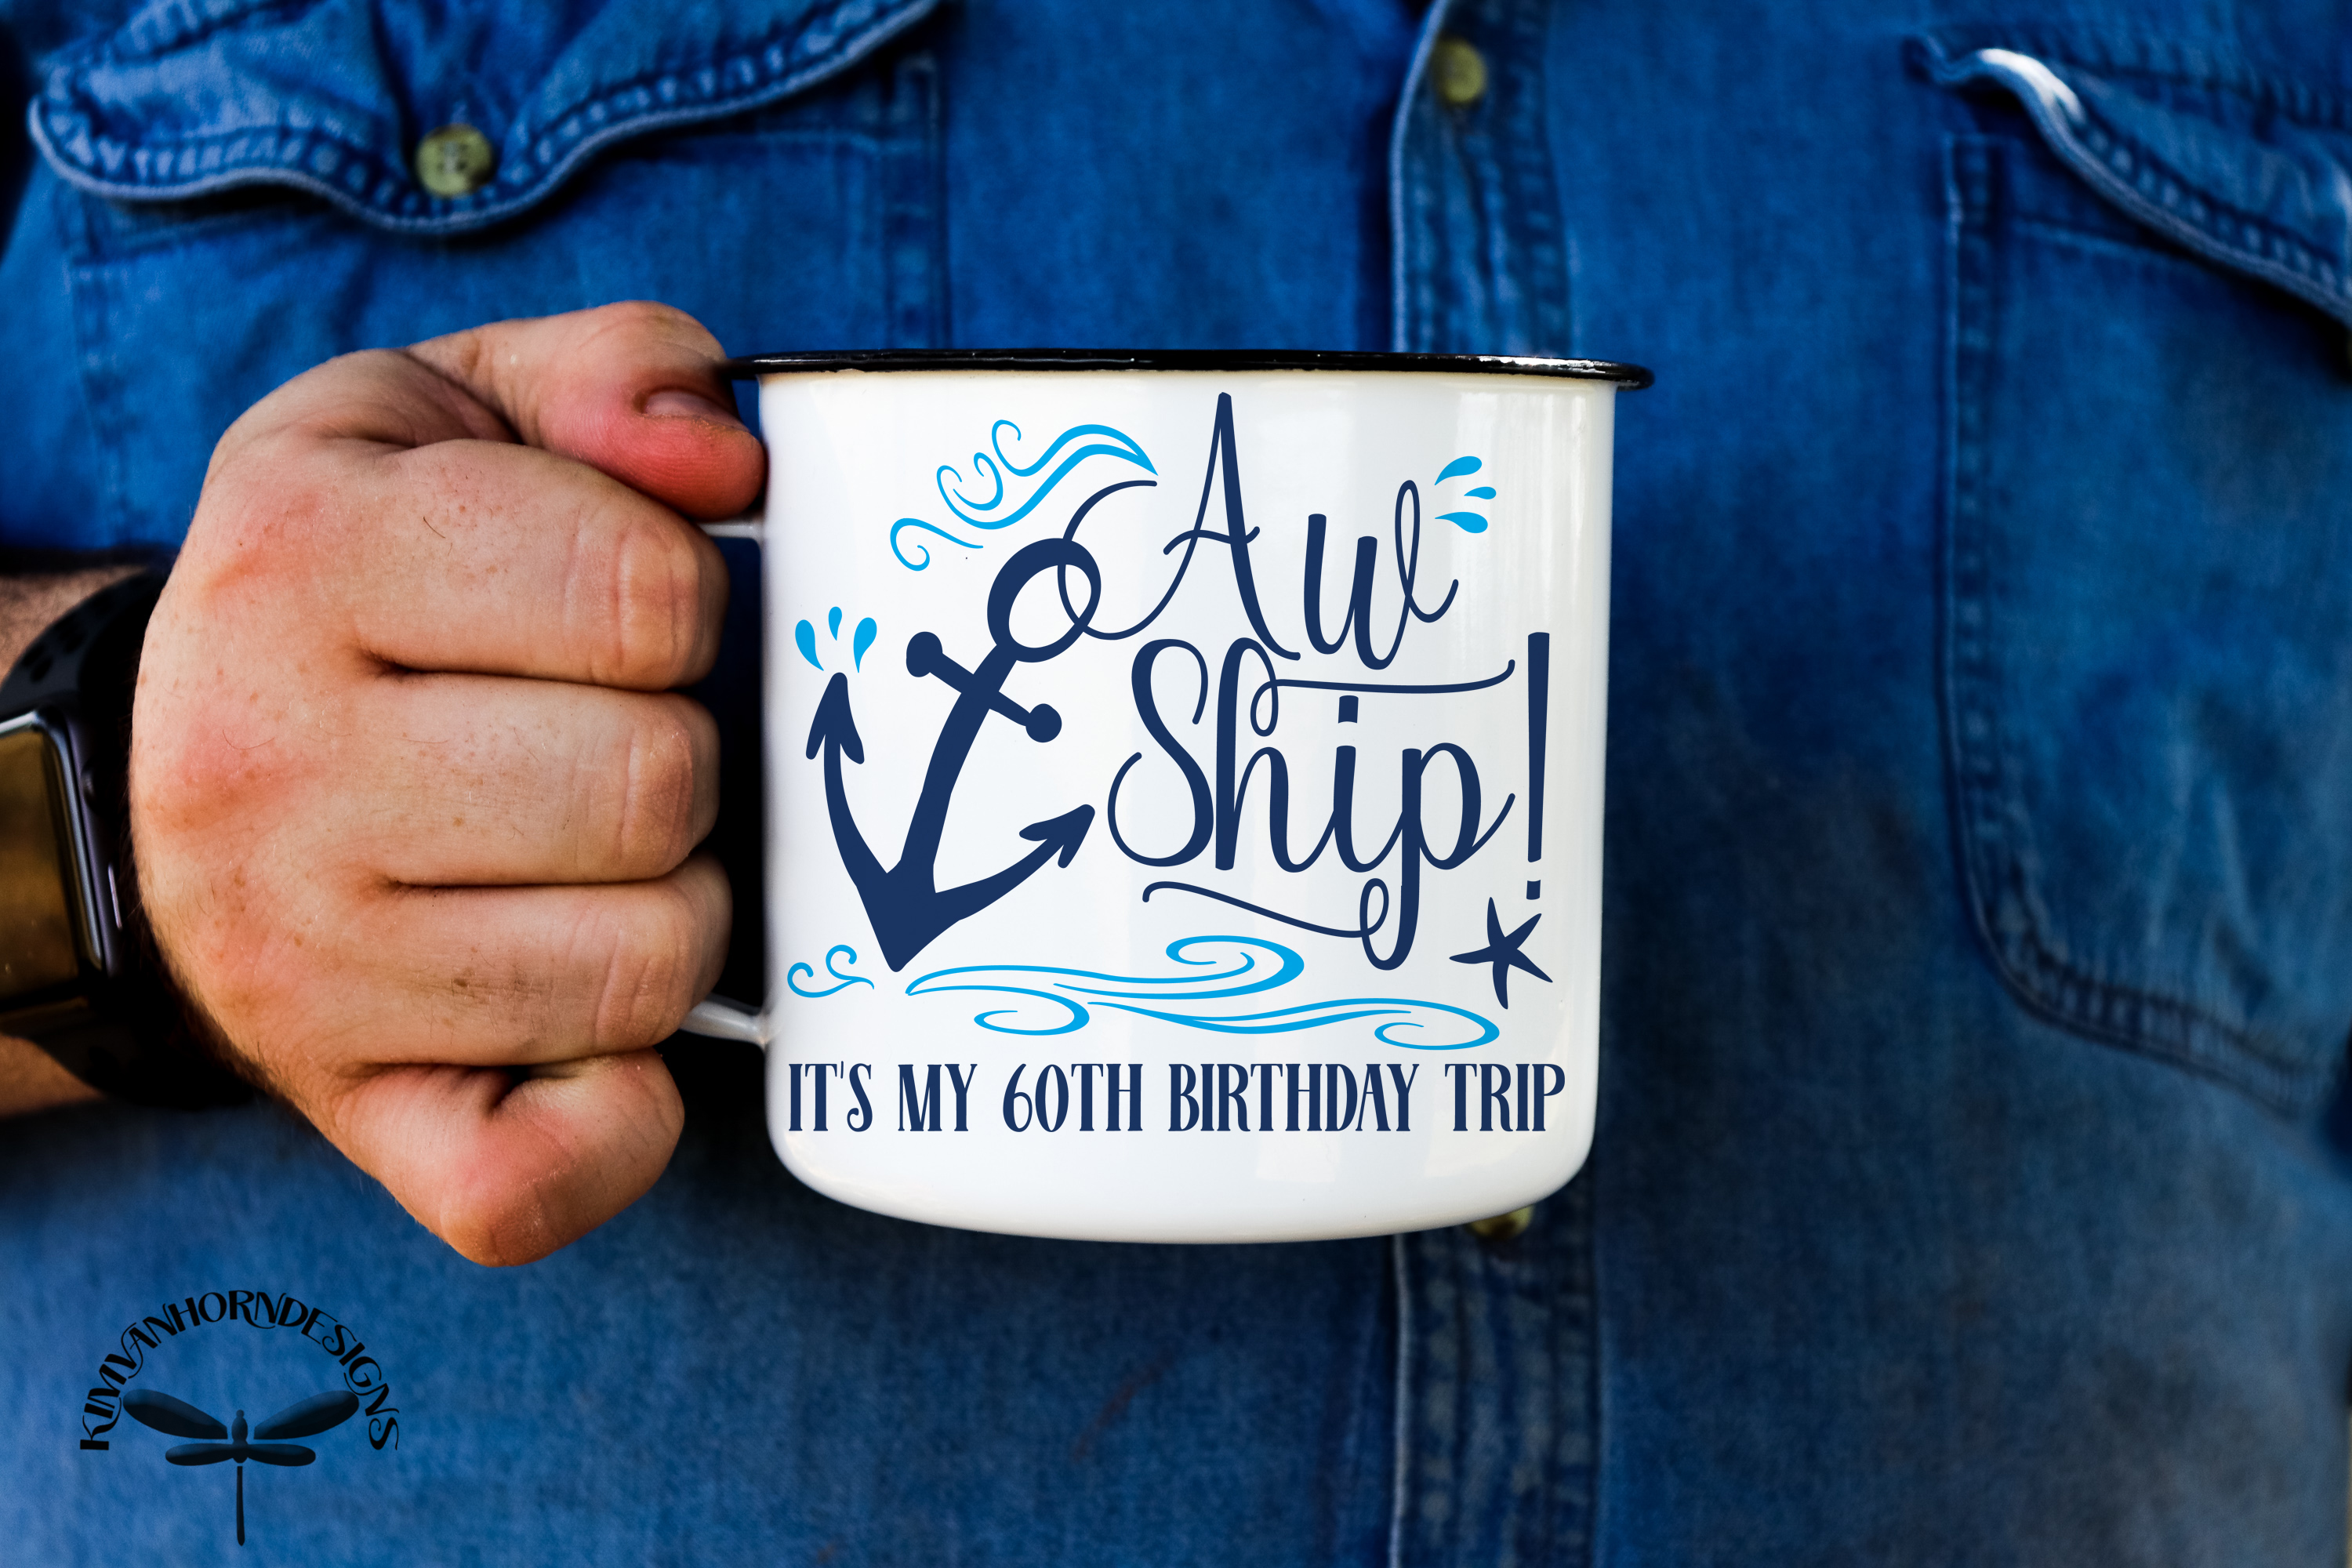 Aw Ship! It's My 60th Birthday Trip example image 2